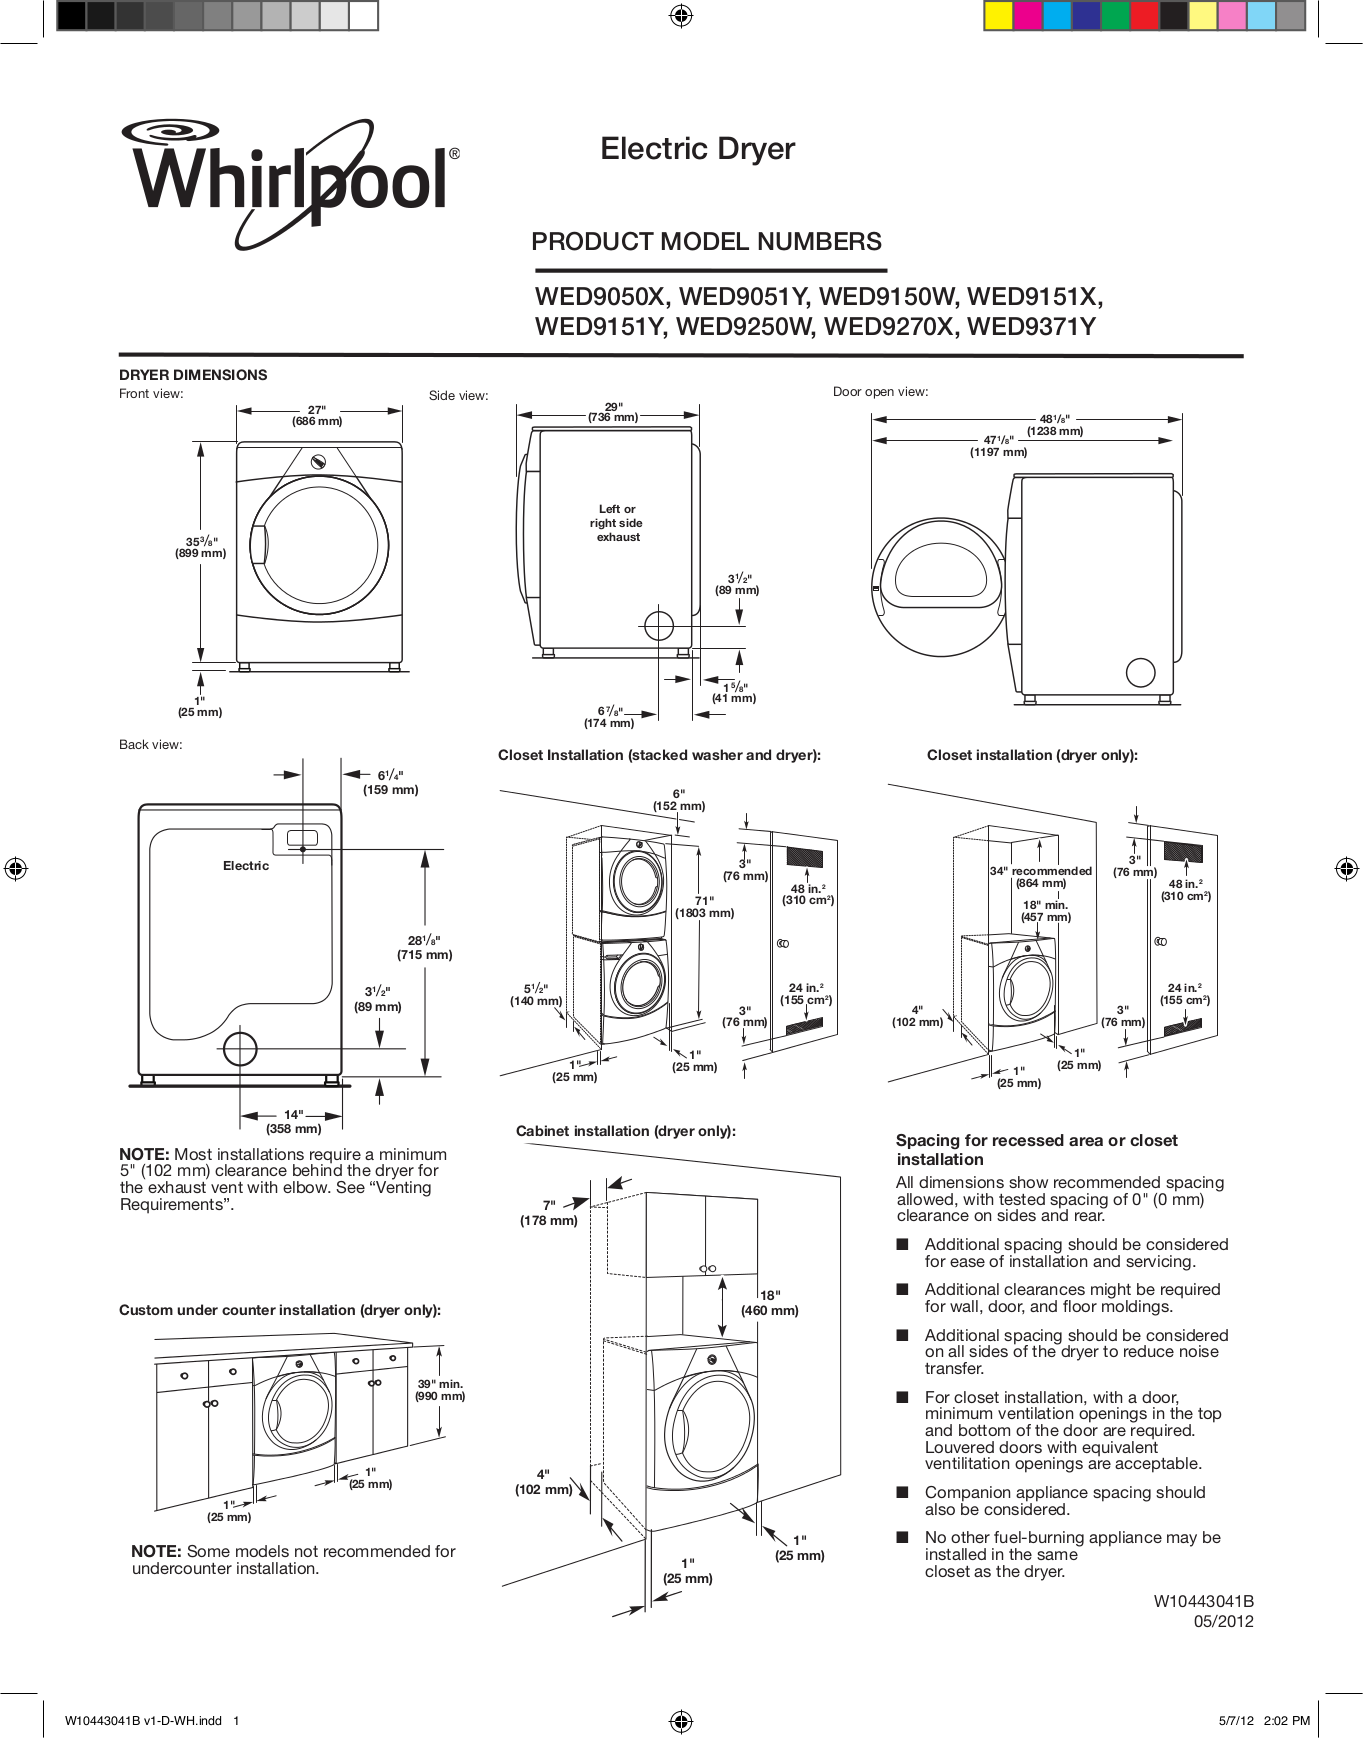 Whirlpool | user manual – devicemanuals.